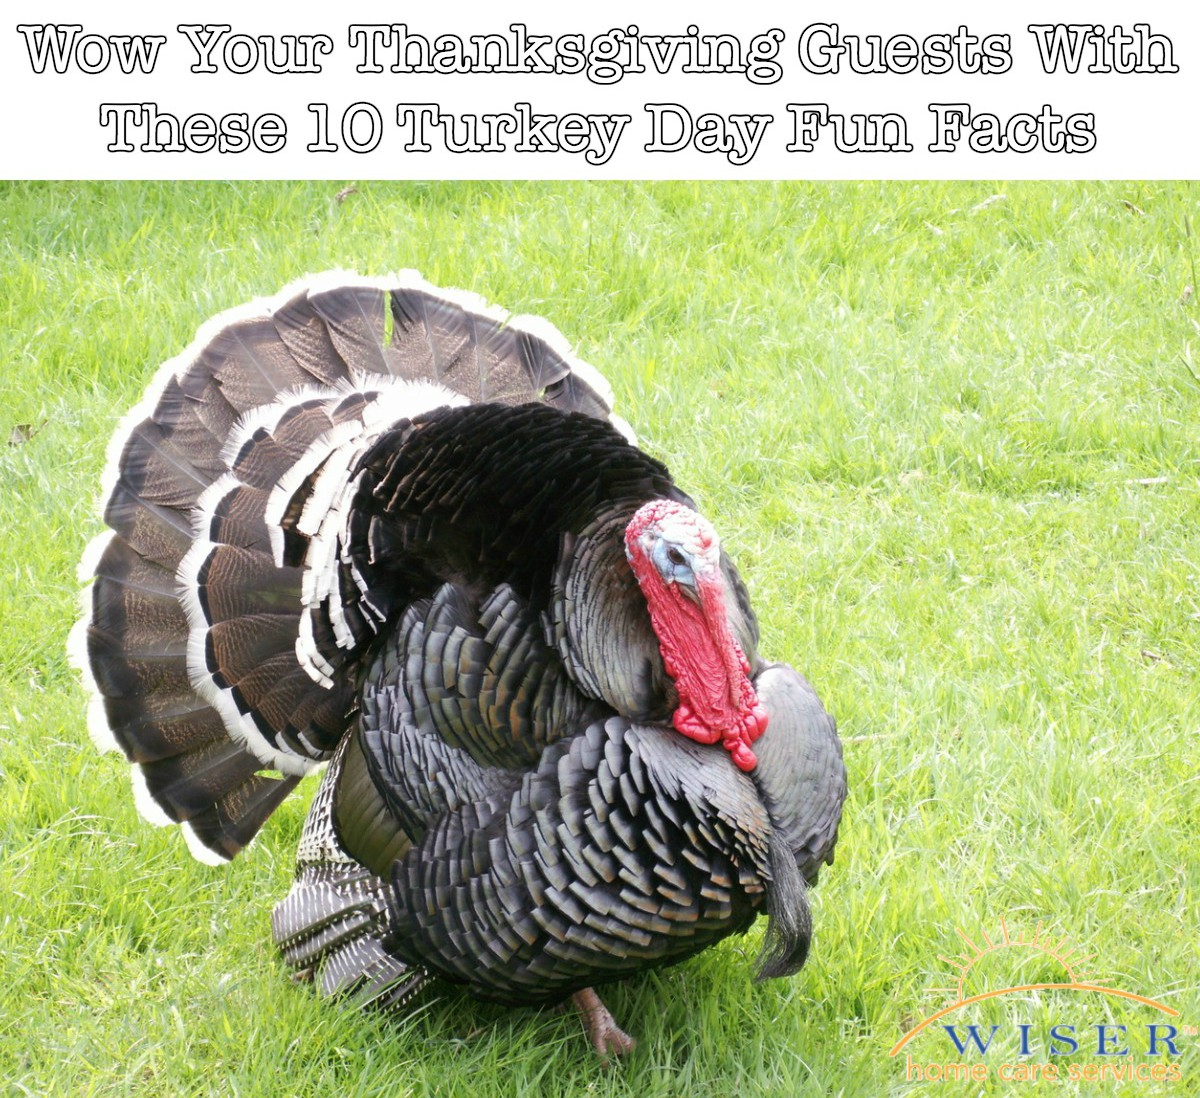 With Thanksgiving just around the corner we thought it would be fun to share some trivia so you can wow your dinner guests over your turkey dinner.